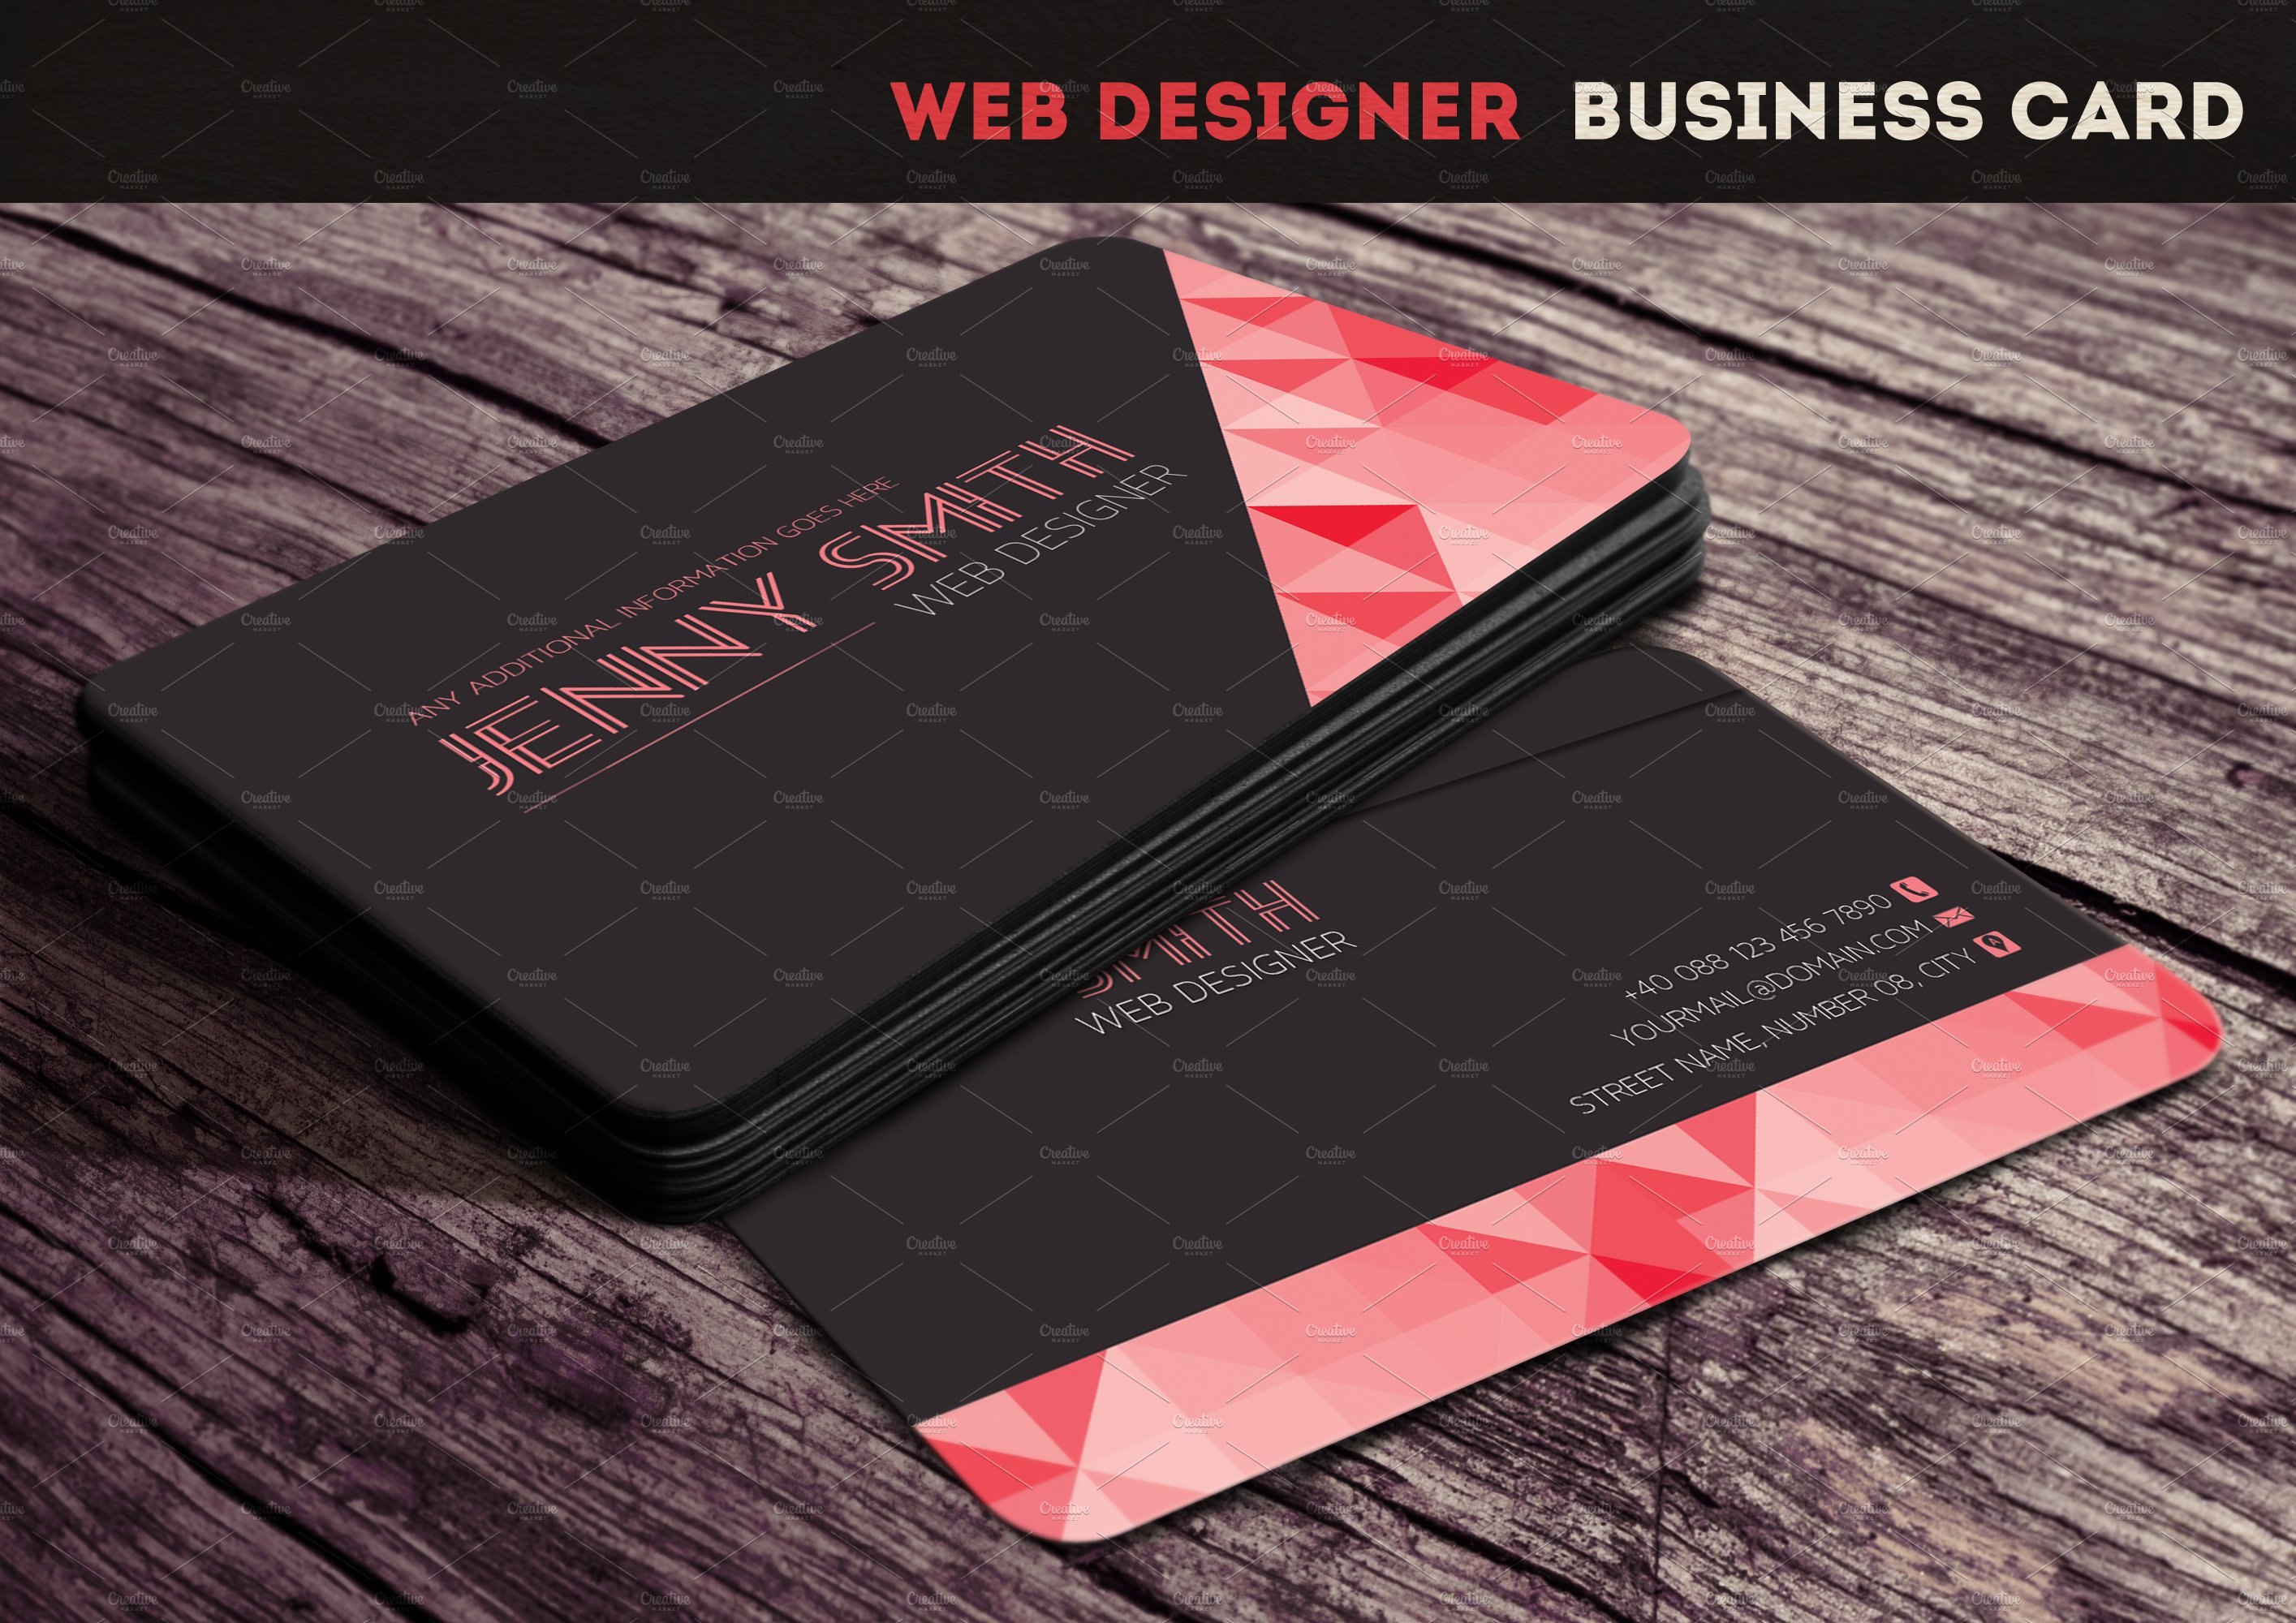 Web designer business card business card templates creative market accmission Gallery